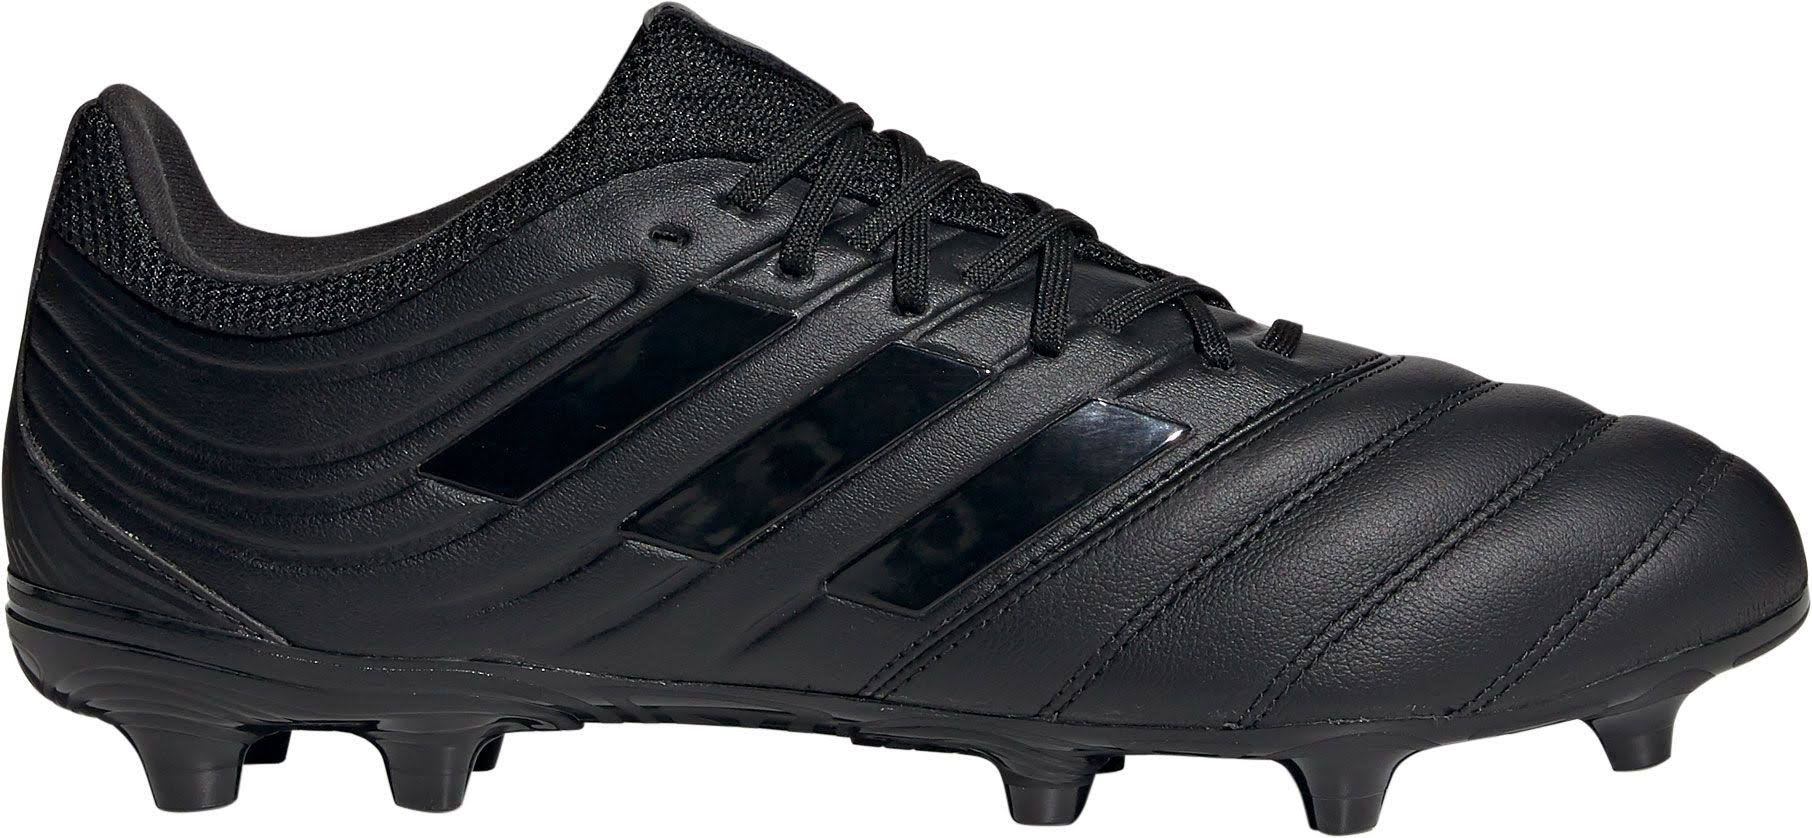 Adidas Copa 20.3 Firm Ground Cleats Black 7.5 - Mens Soccer Cleats